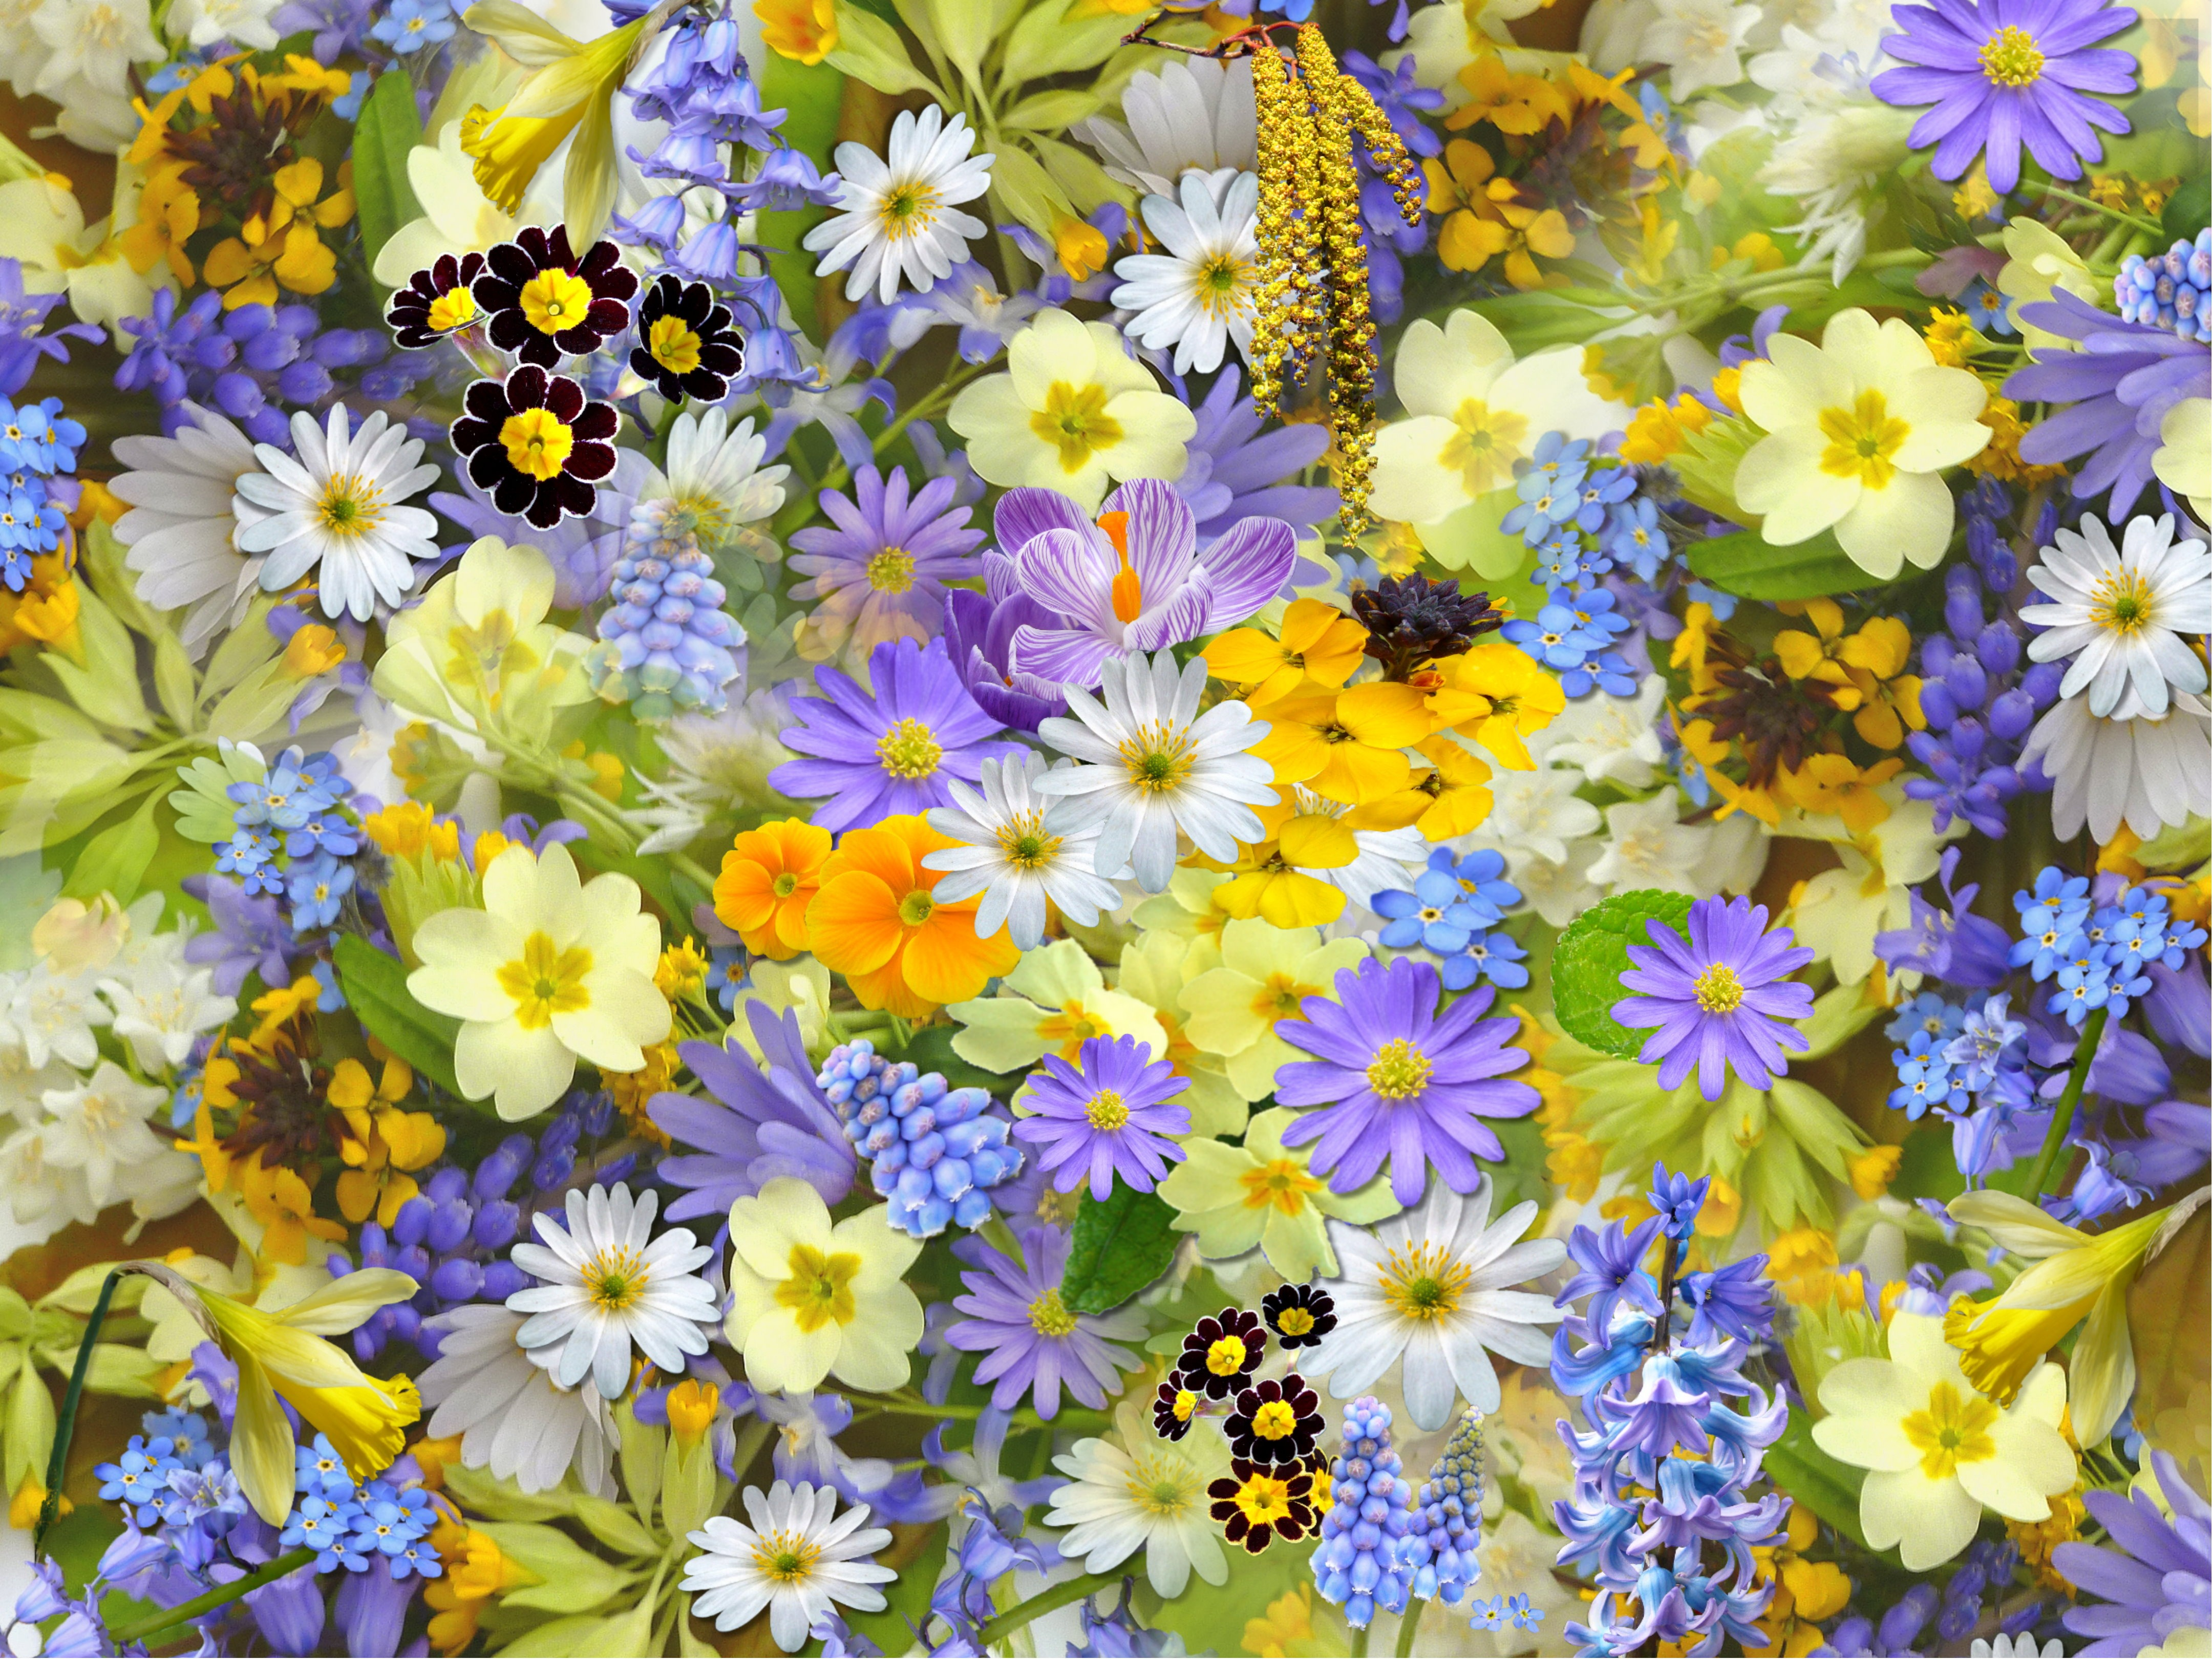 spring-flowers-flowers-collage-floral-68507.jpeg (4320×3240)